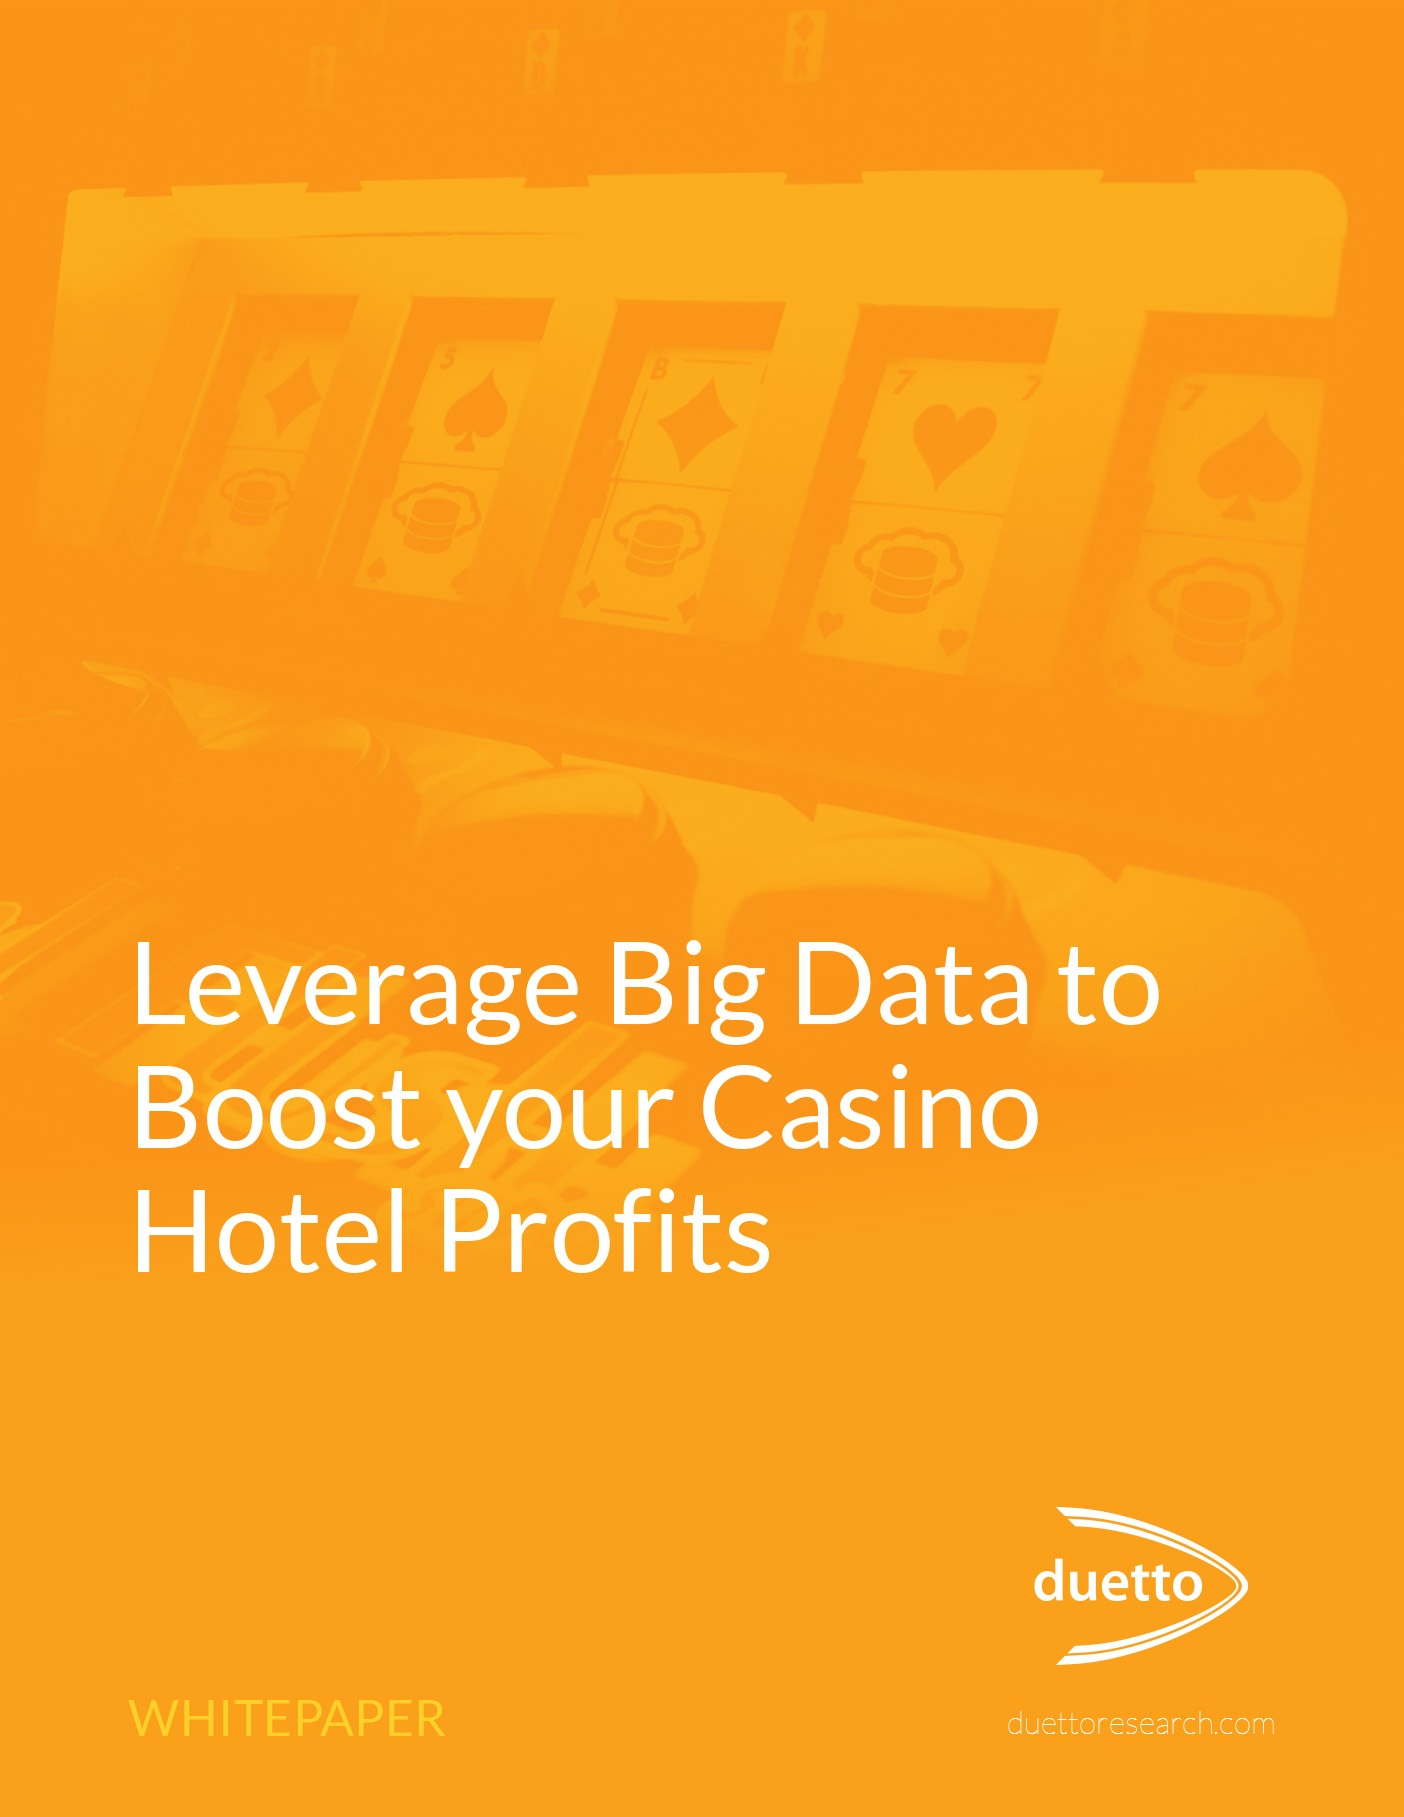 1Leverage-Big-Data-to-Boost-your-Hotel-Casino-Profits-1.jpg